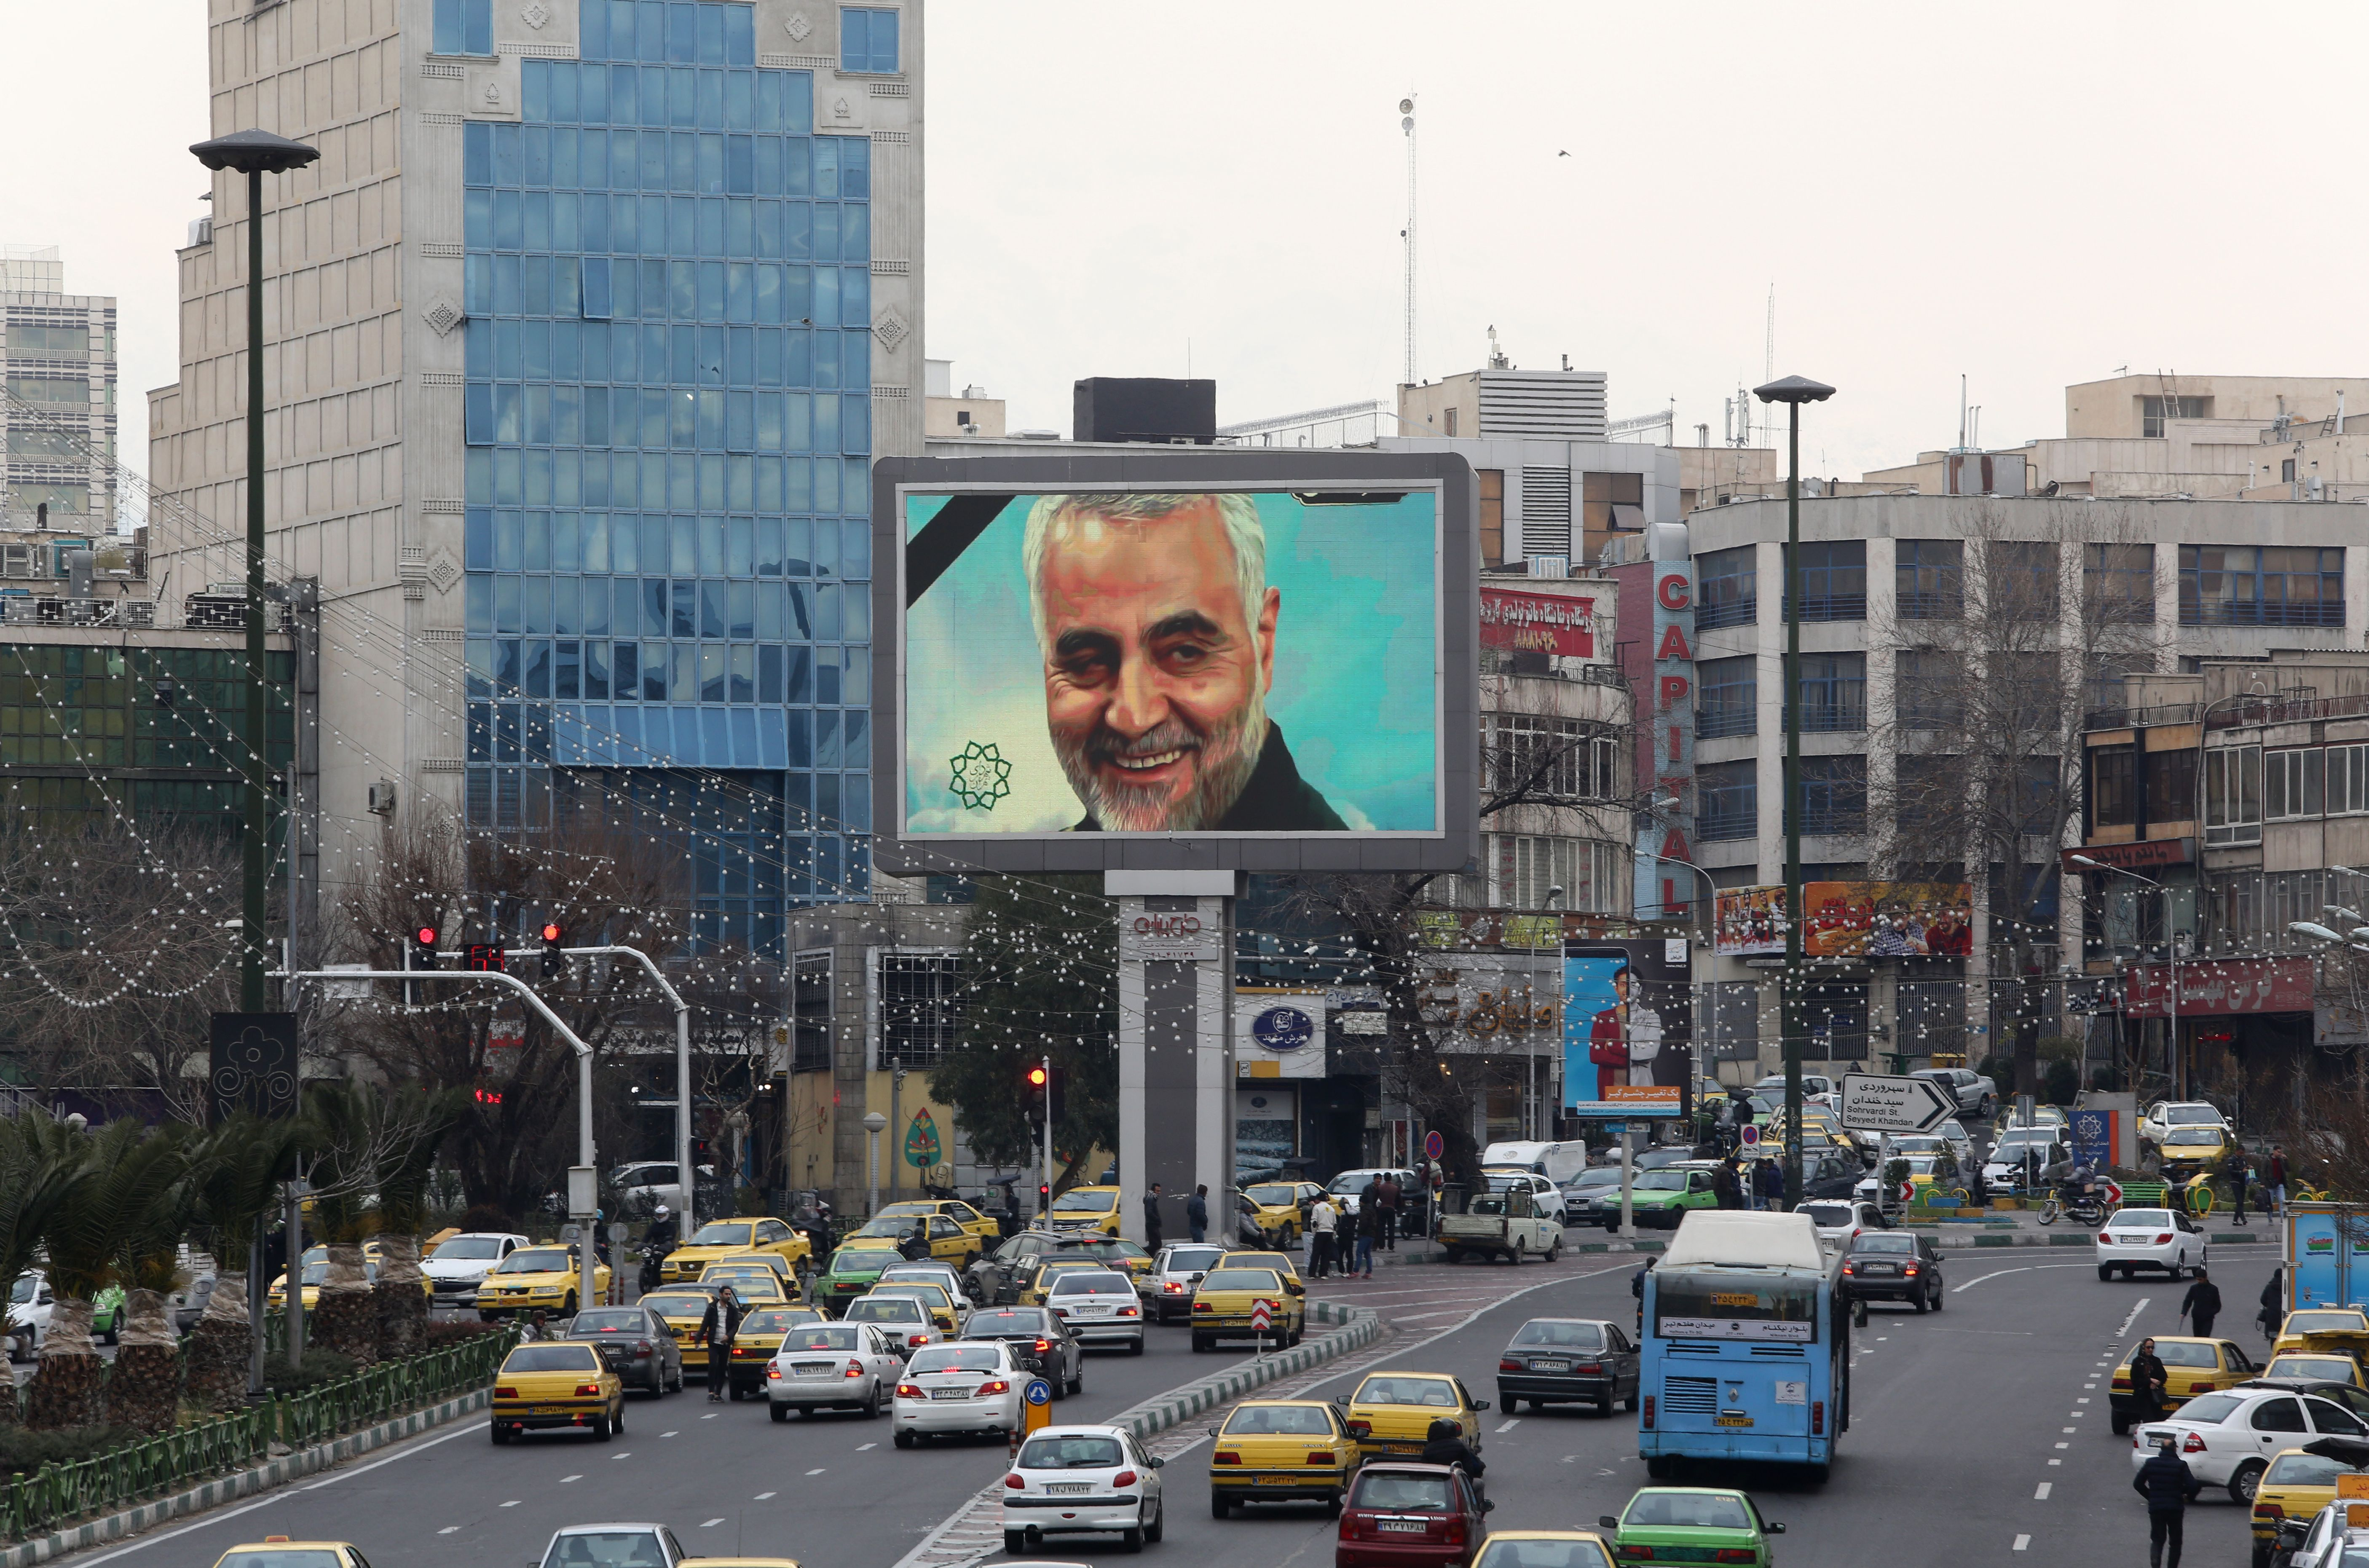 A billboard with a portrait of Qasem Soleimani is displayed in the Iranian capital of Tehran.